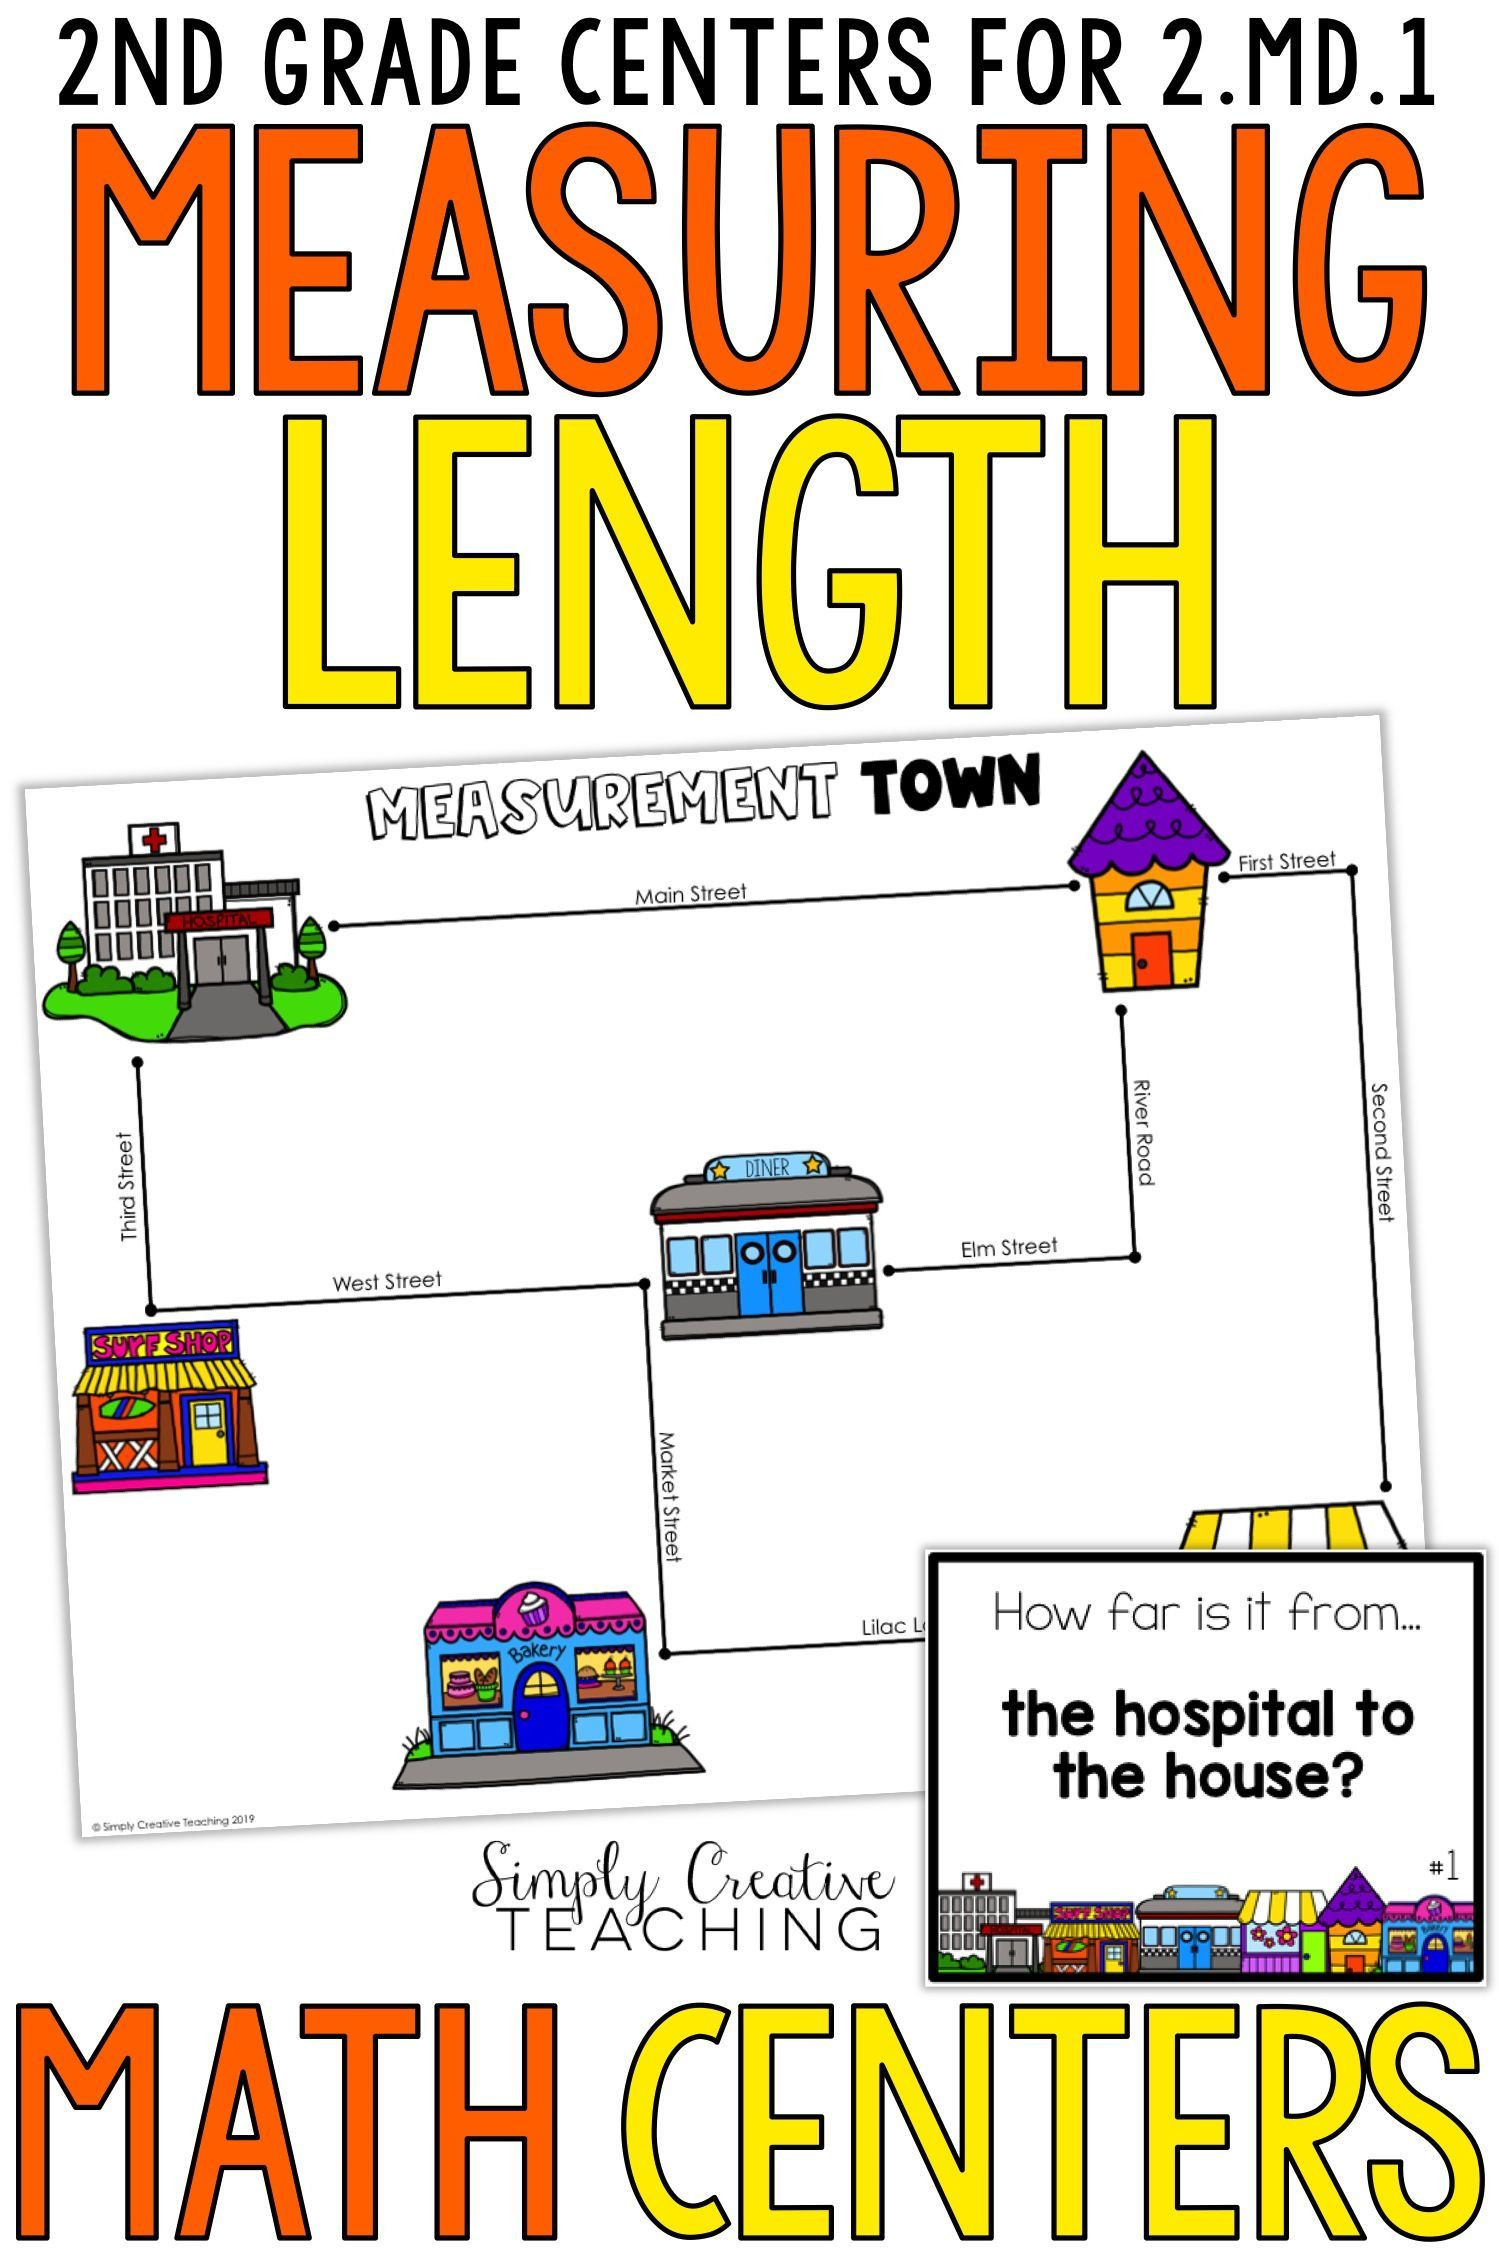 2nd Grade Measurement Worksheets 2nd Grade Measurement Centers for 2 Md 1